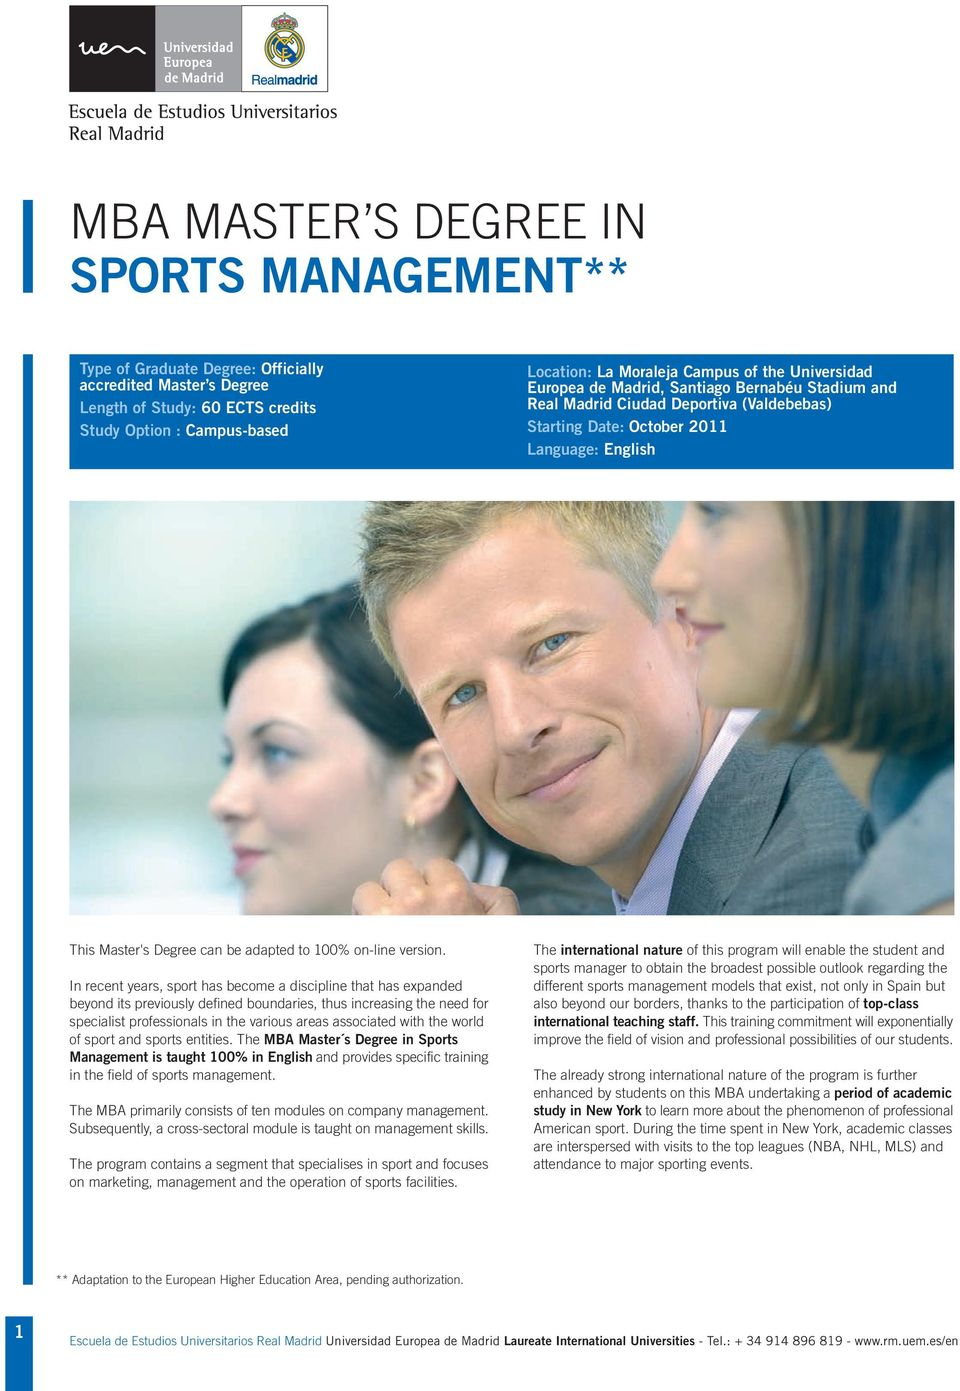 In recent years, sport has become a discipline that has expanded beyond its previously defined boundaries, thus increasing the need for specialist professionals in the various areas associated with